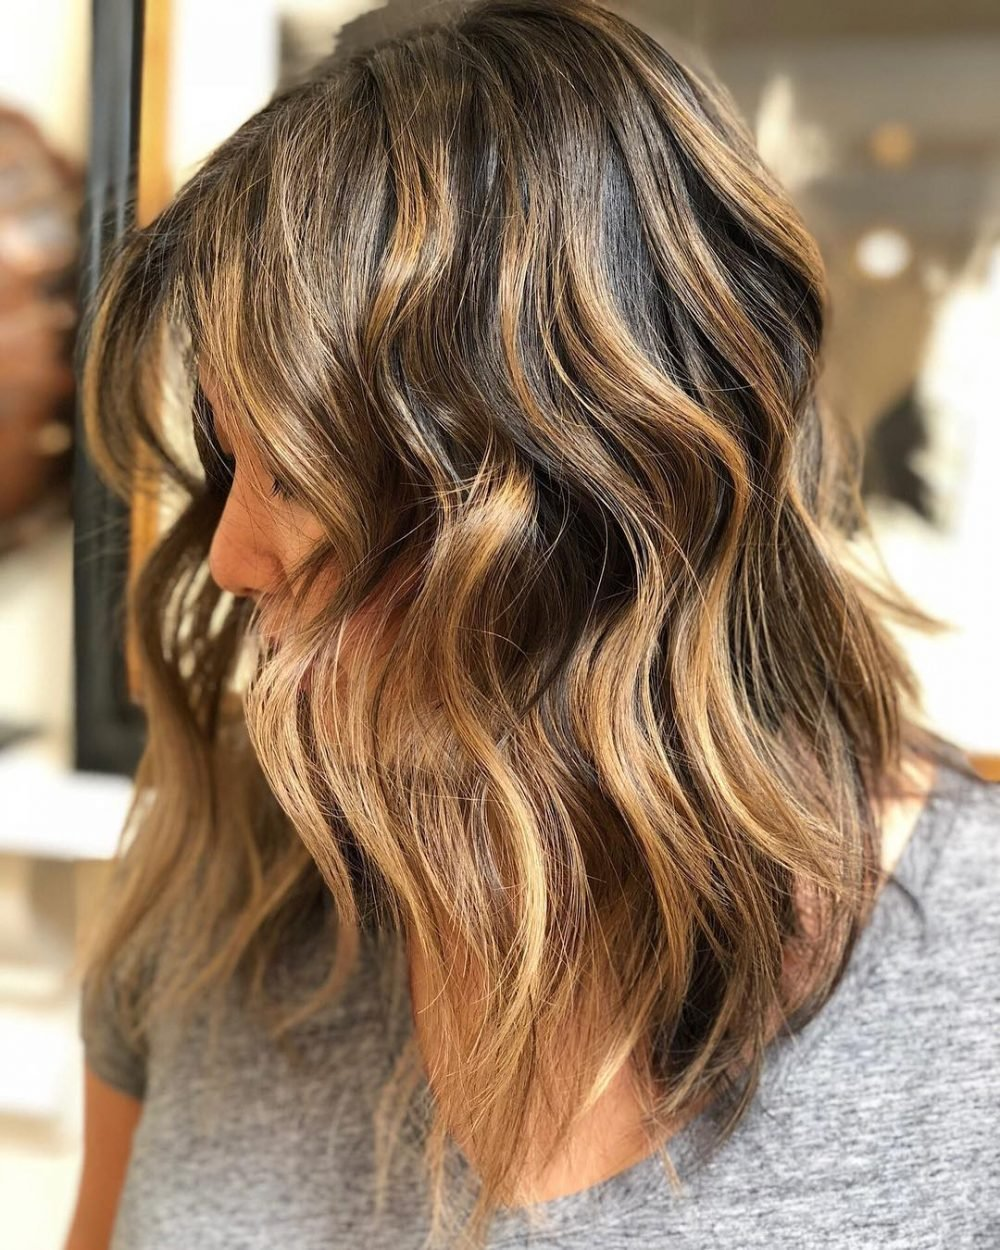 The Best 40 Different Hairstyles To Try In 2019 Pictures